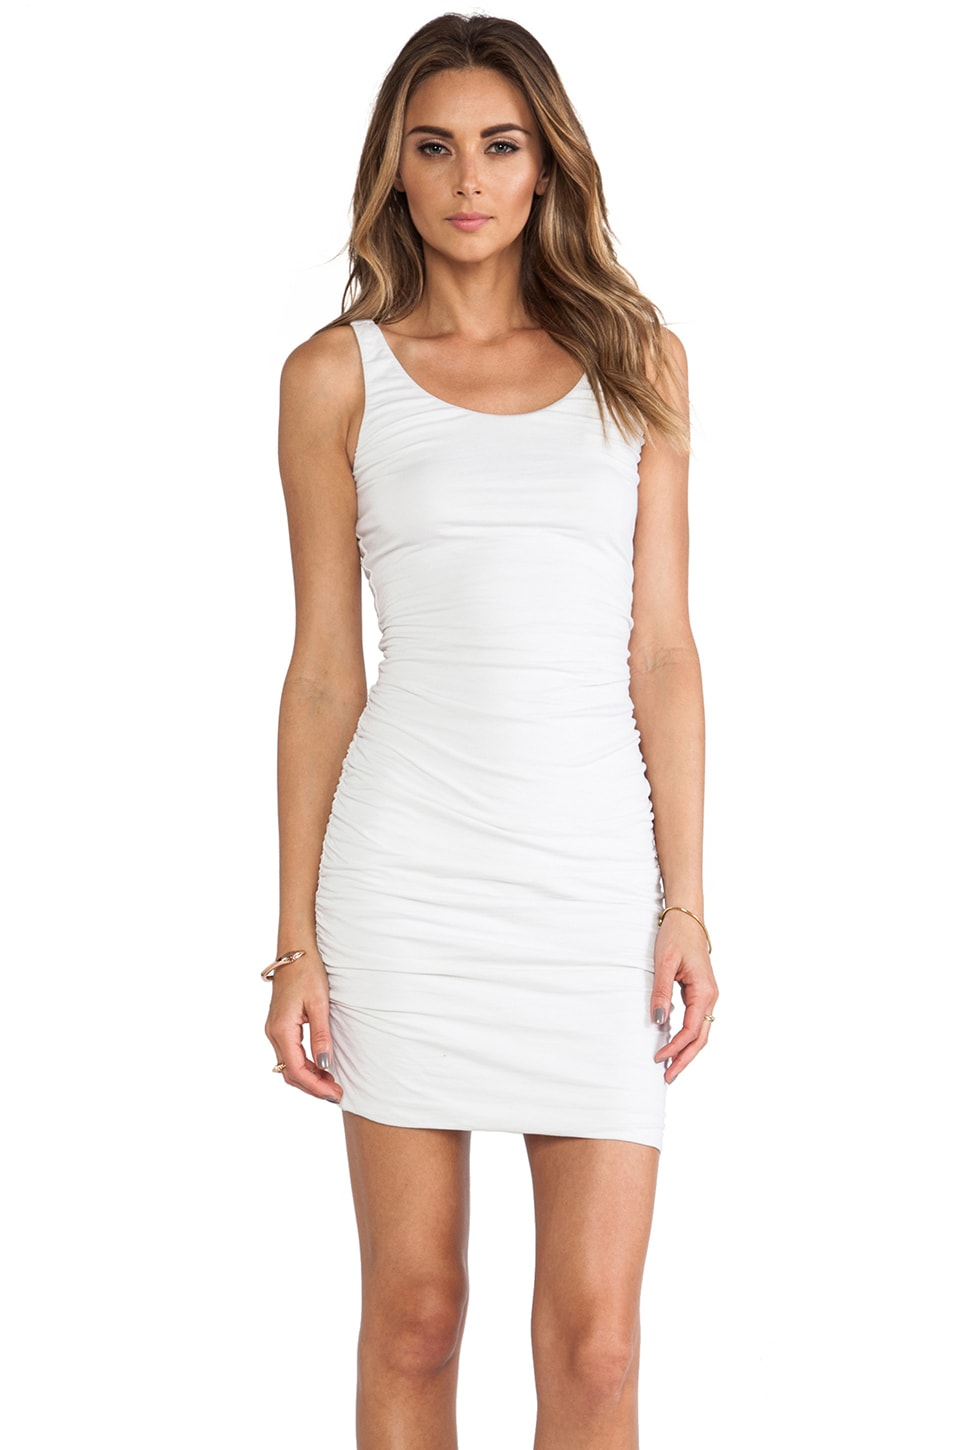 Velvet by Graham & Spencer Tai Gauzy Whisper Dress in White